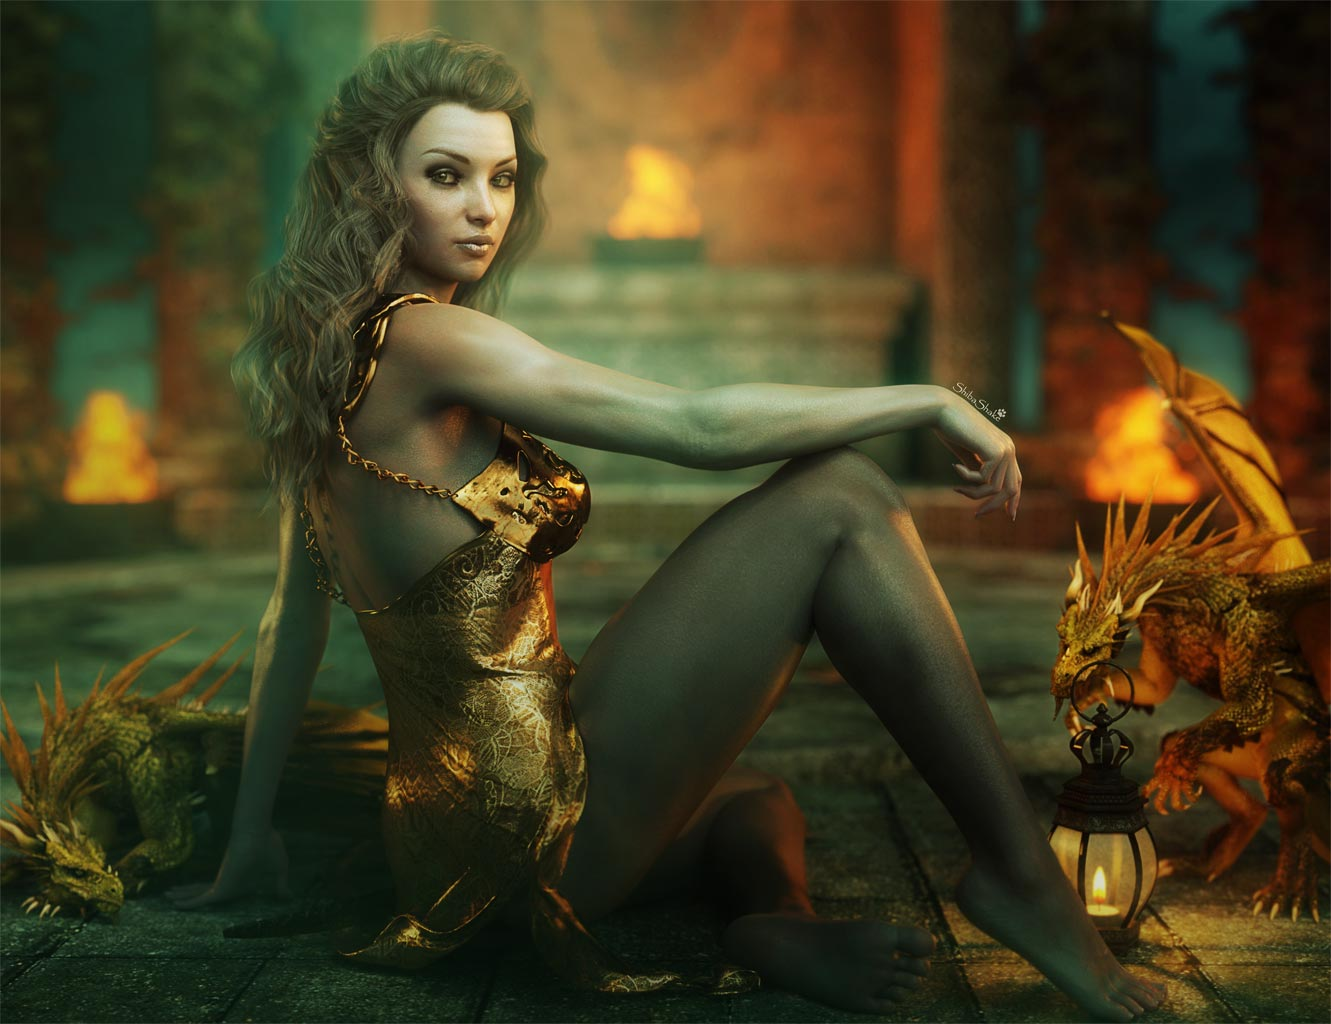 dragons and nude women fantasy art